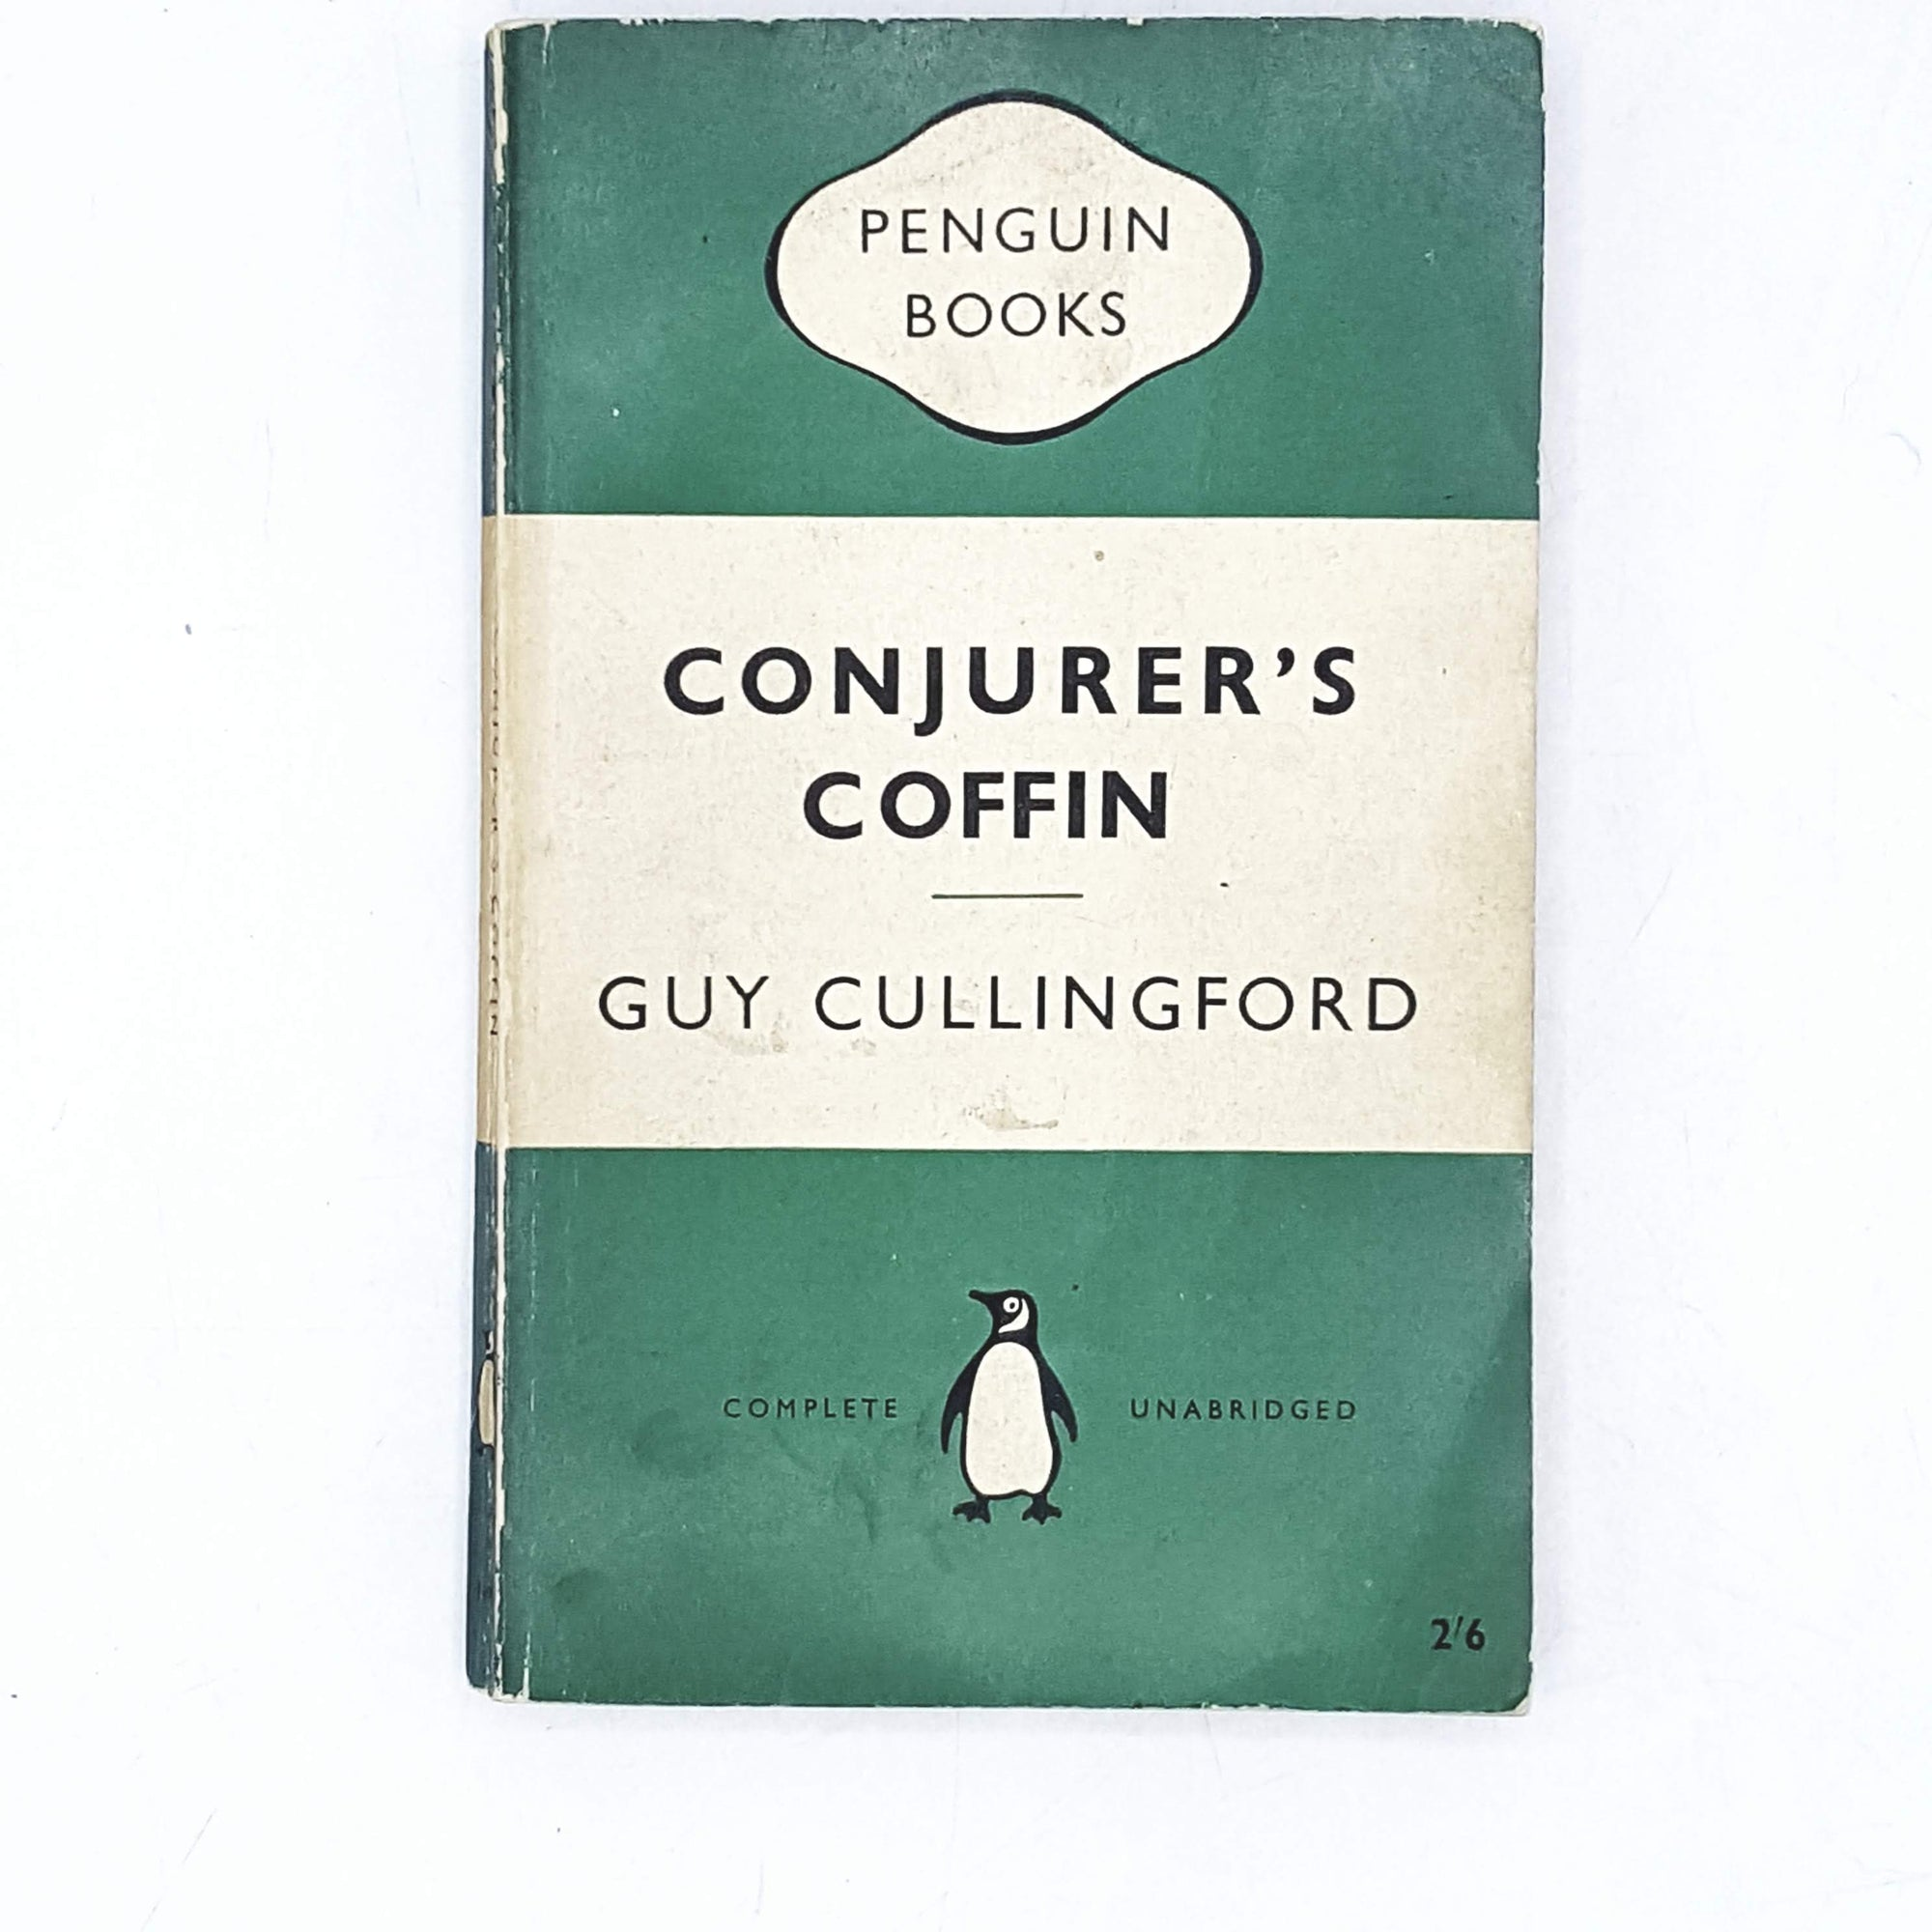 vintage-penguin-conjurers-coffin-by-guy-cullinford-1957-rare-books-country-house-library-rare-books-country-house-library